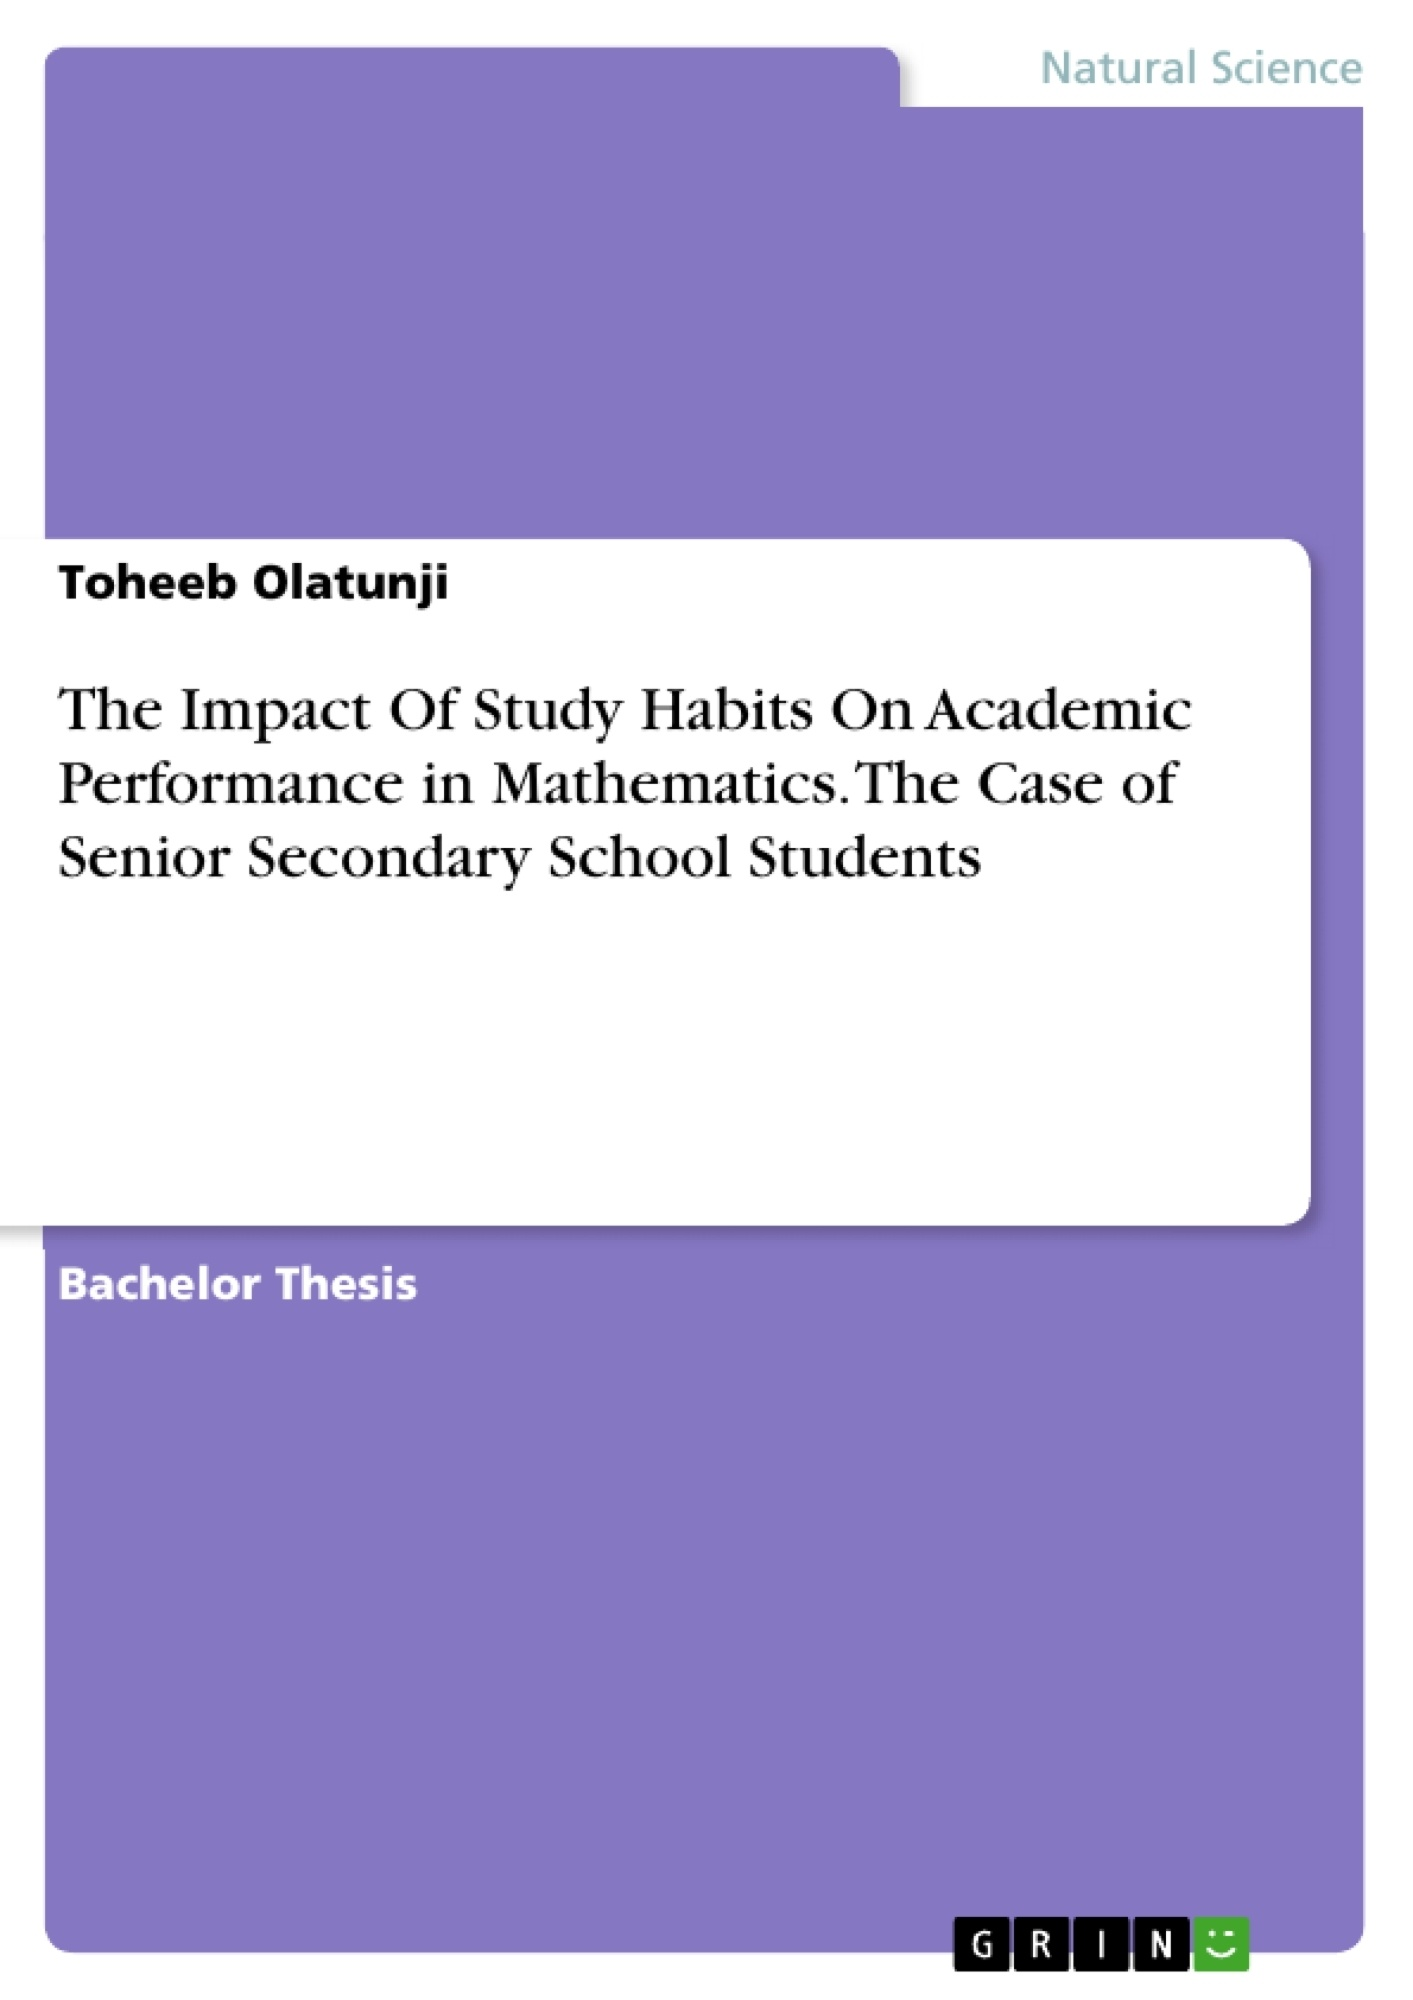 Title: The Impact Of Study Habits On Academic Performance in Mathematics. The Case of Senior Secondary School Students